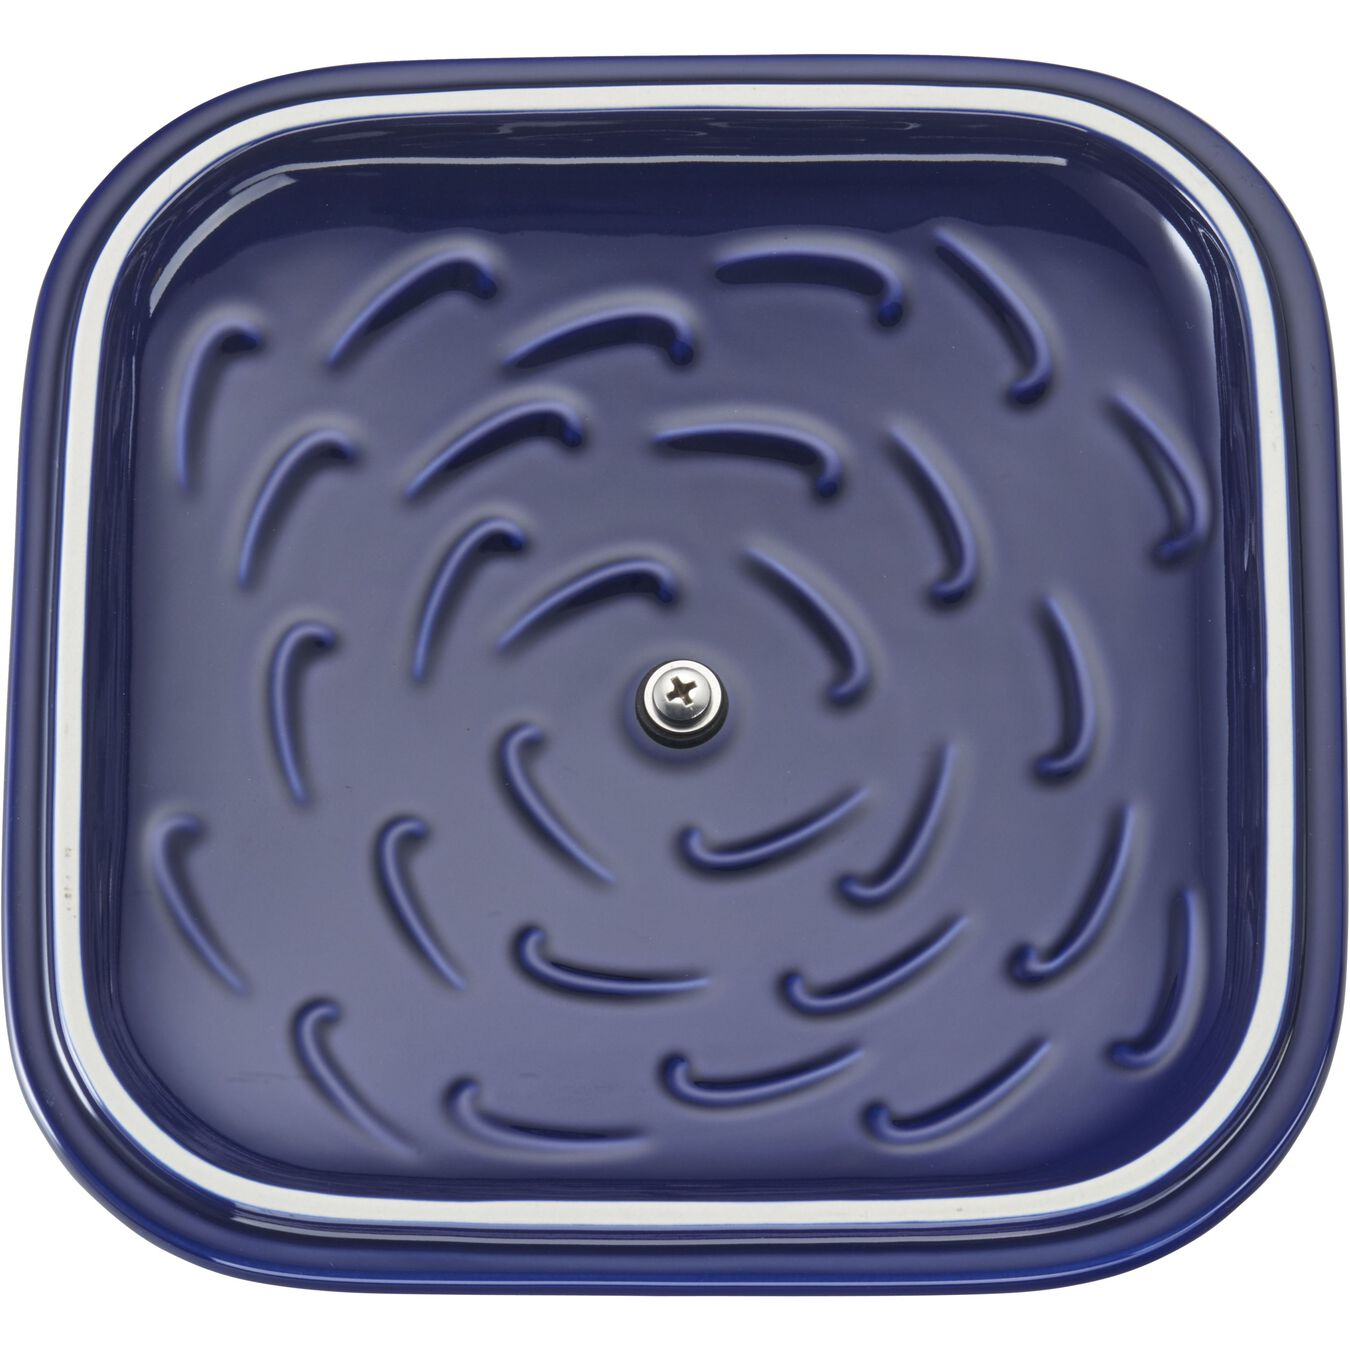 9-inch X 9-inch Square Covered Baking Dish - Dark Blue,,large 5